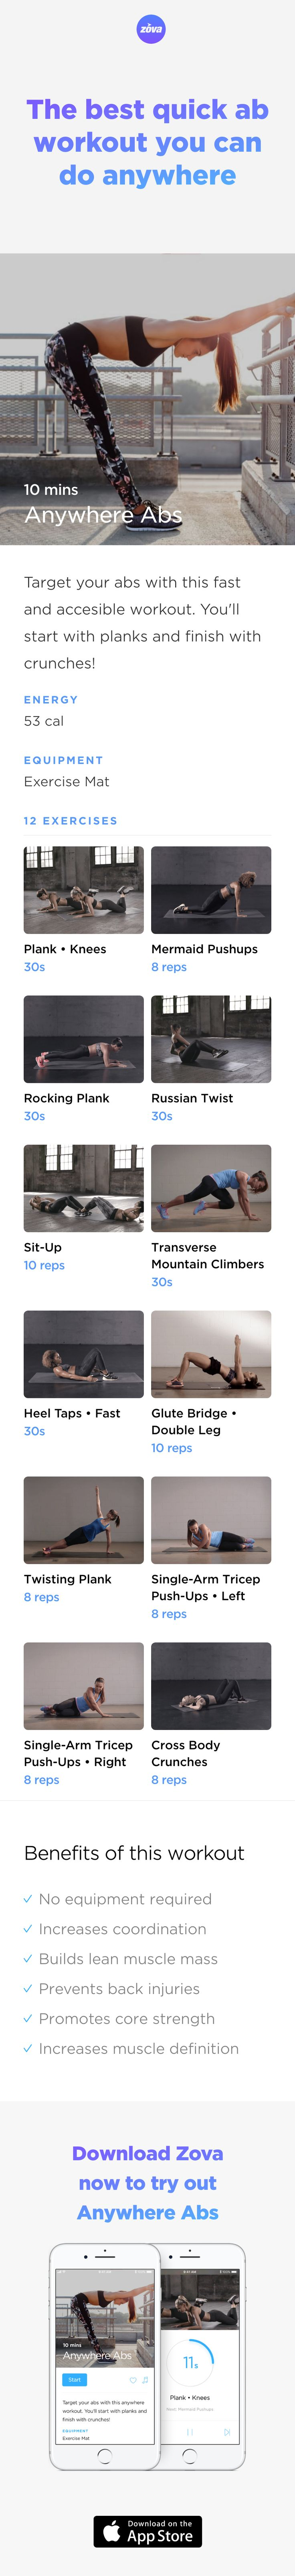 Who says you need to workout in a gym? This no-equipment workout is fast and effective, and can be done anywhere. Using bodyweight exercises, you'll be able to carve out the perfect abs in under 10 minutes. All you need is a little energy, a little space and some motivation! #workout #abs #fitness